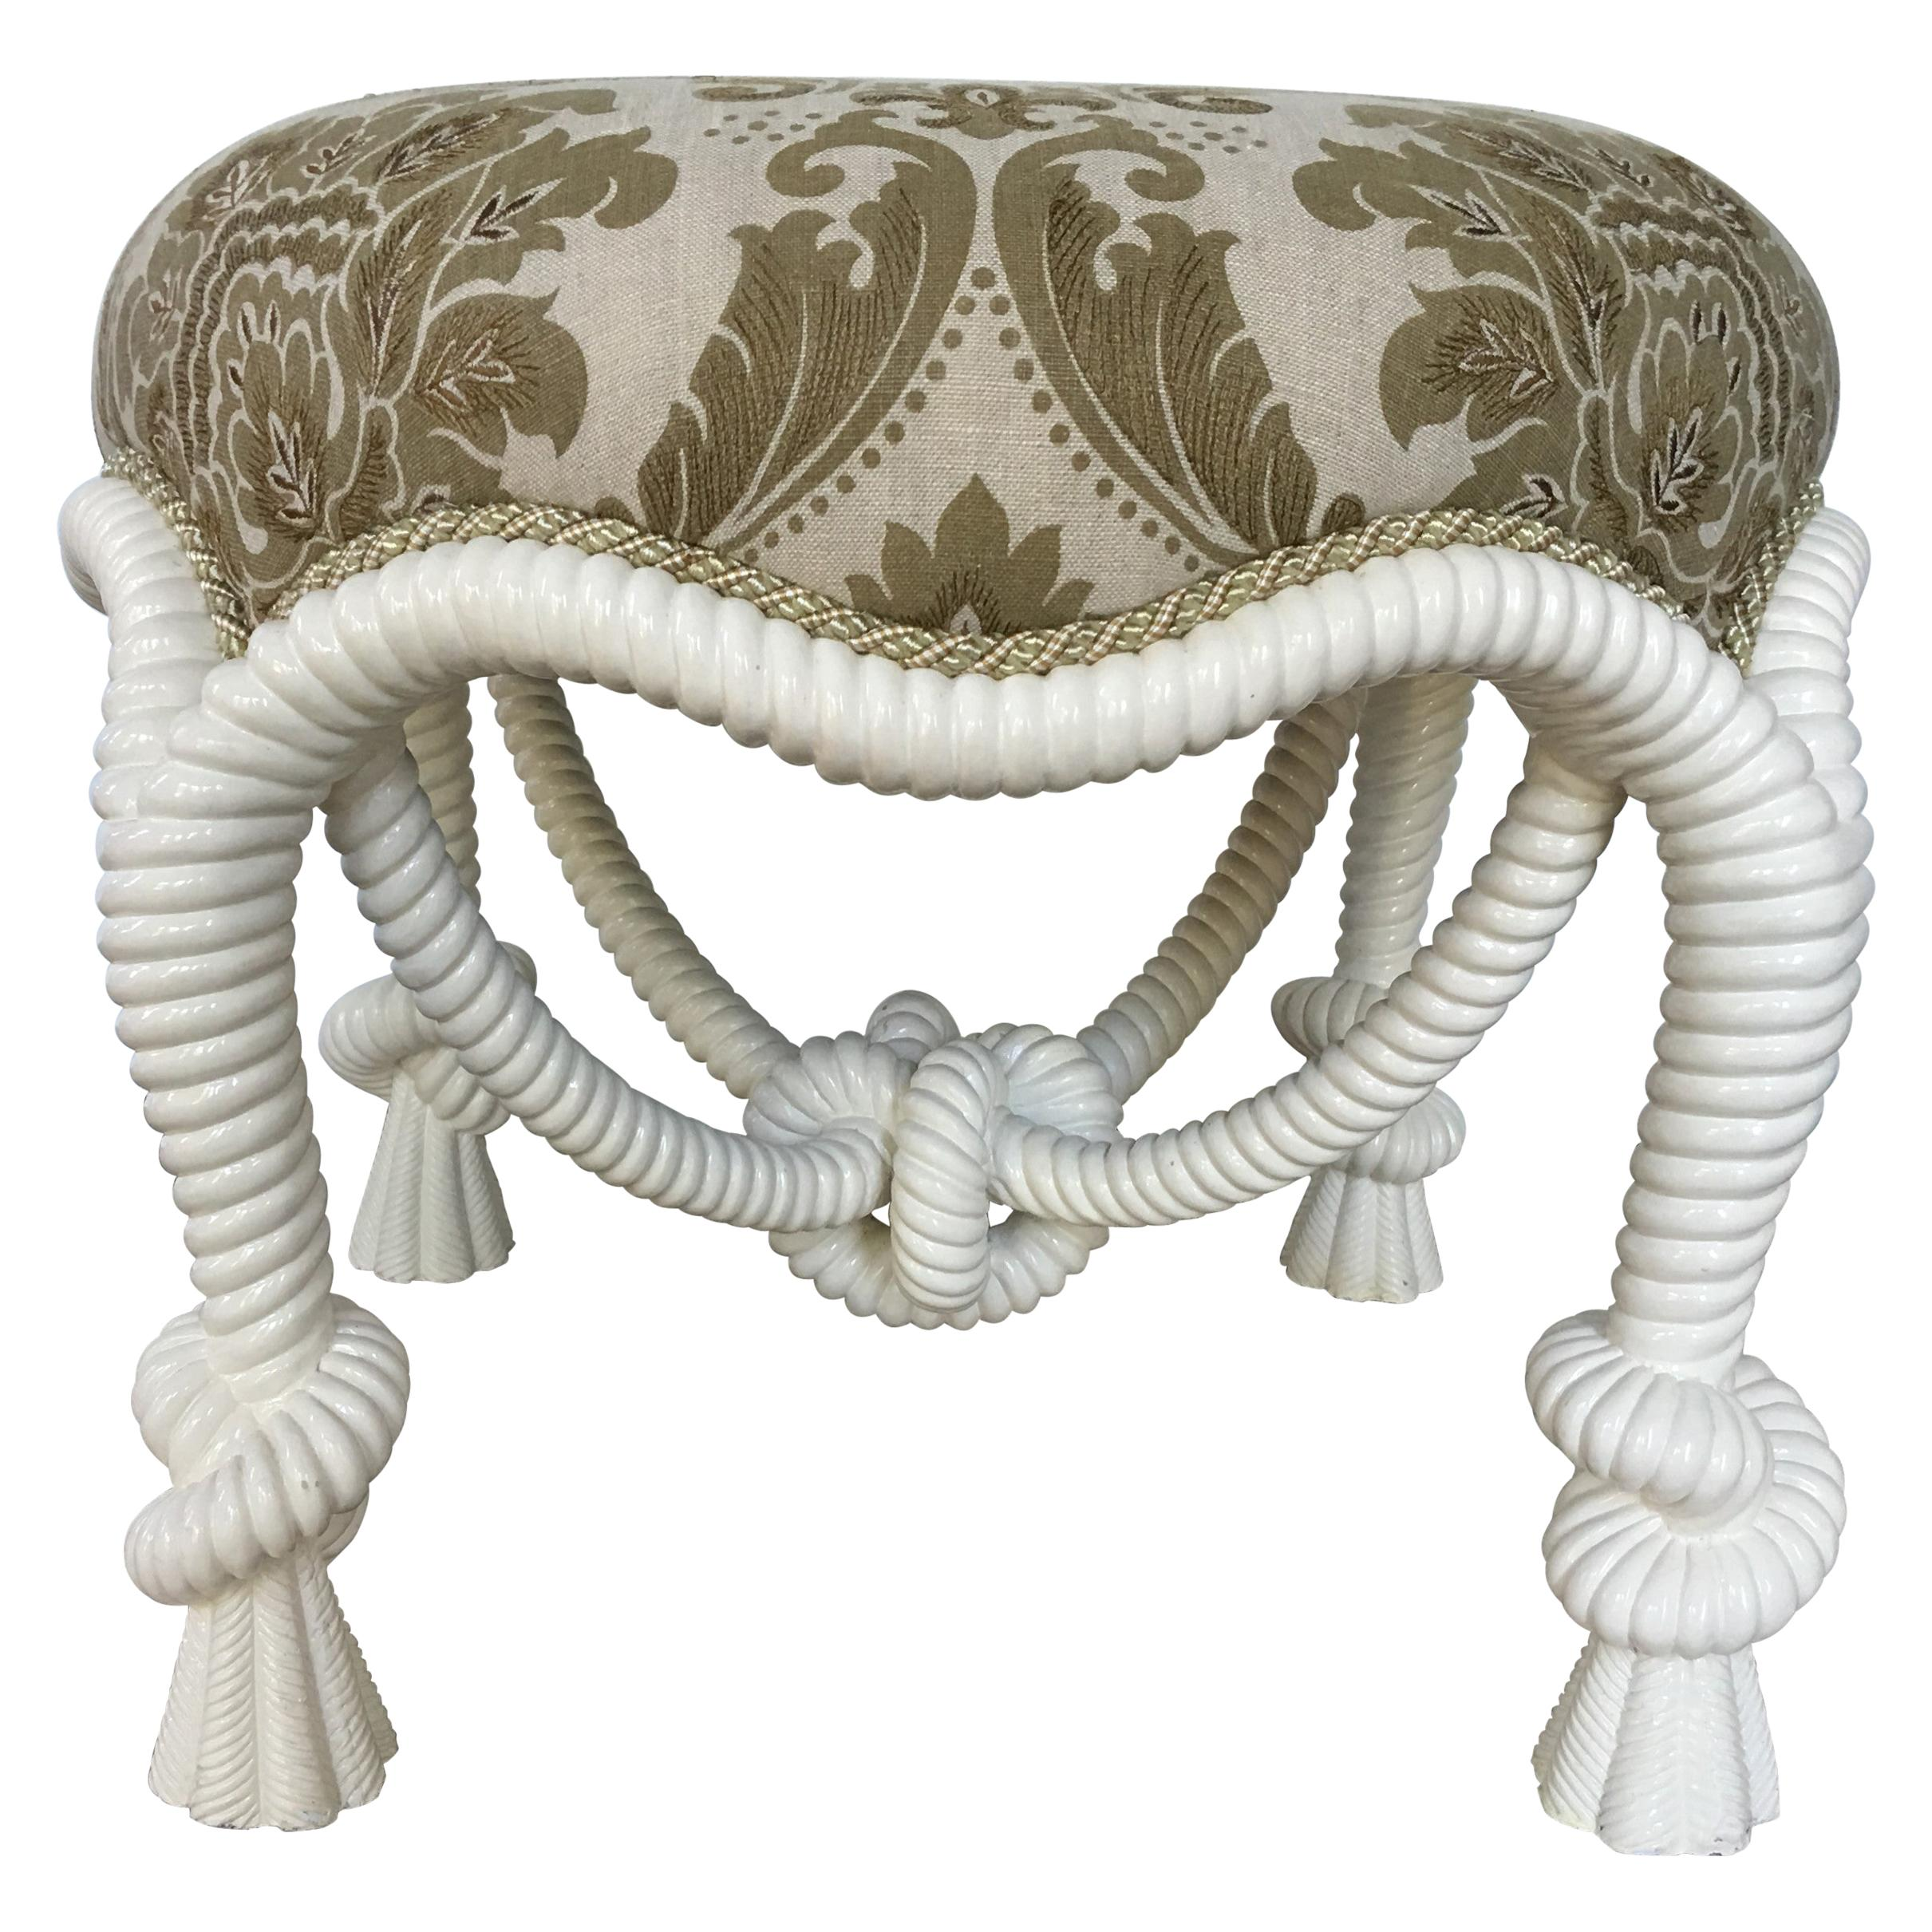 20th Century Napoleon III Style Lacquered Rope Twist Upholstered Tabouret